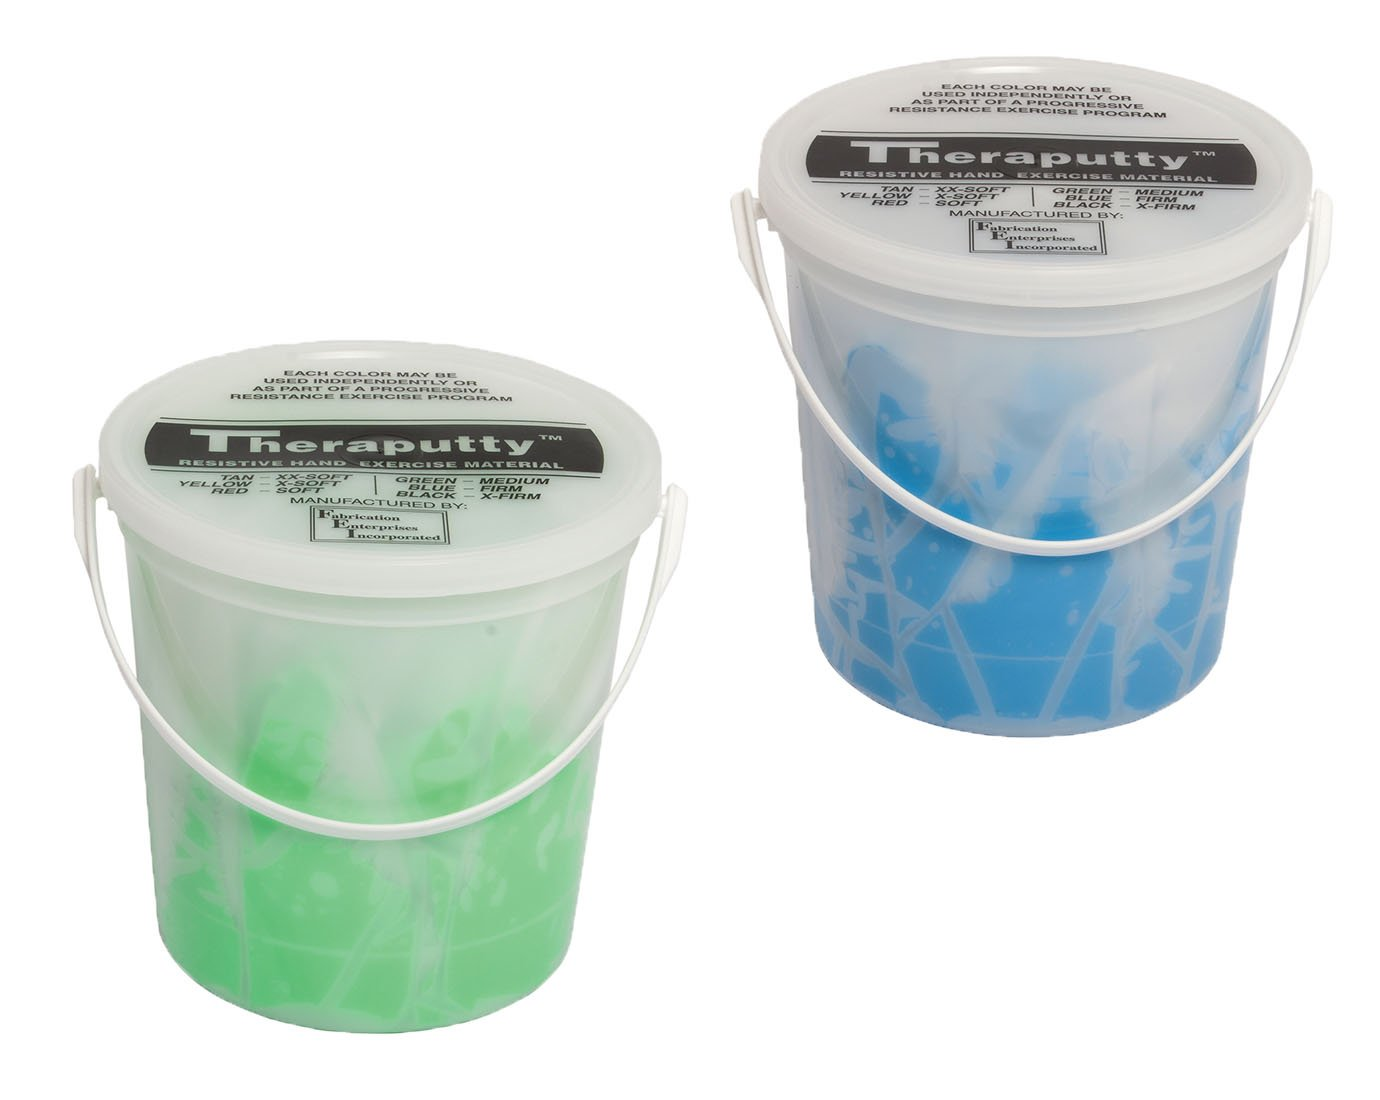 TheraPutty Standard Exercise Putty Green - Medium, Blue - Firm 5 LB Each - Bundle